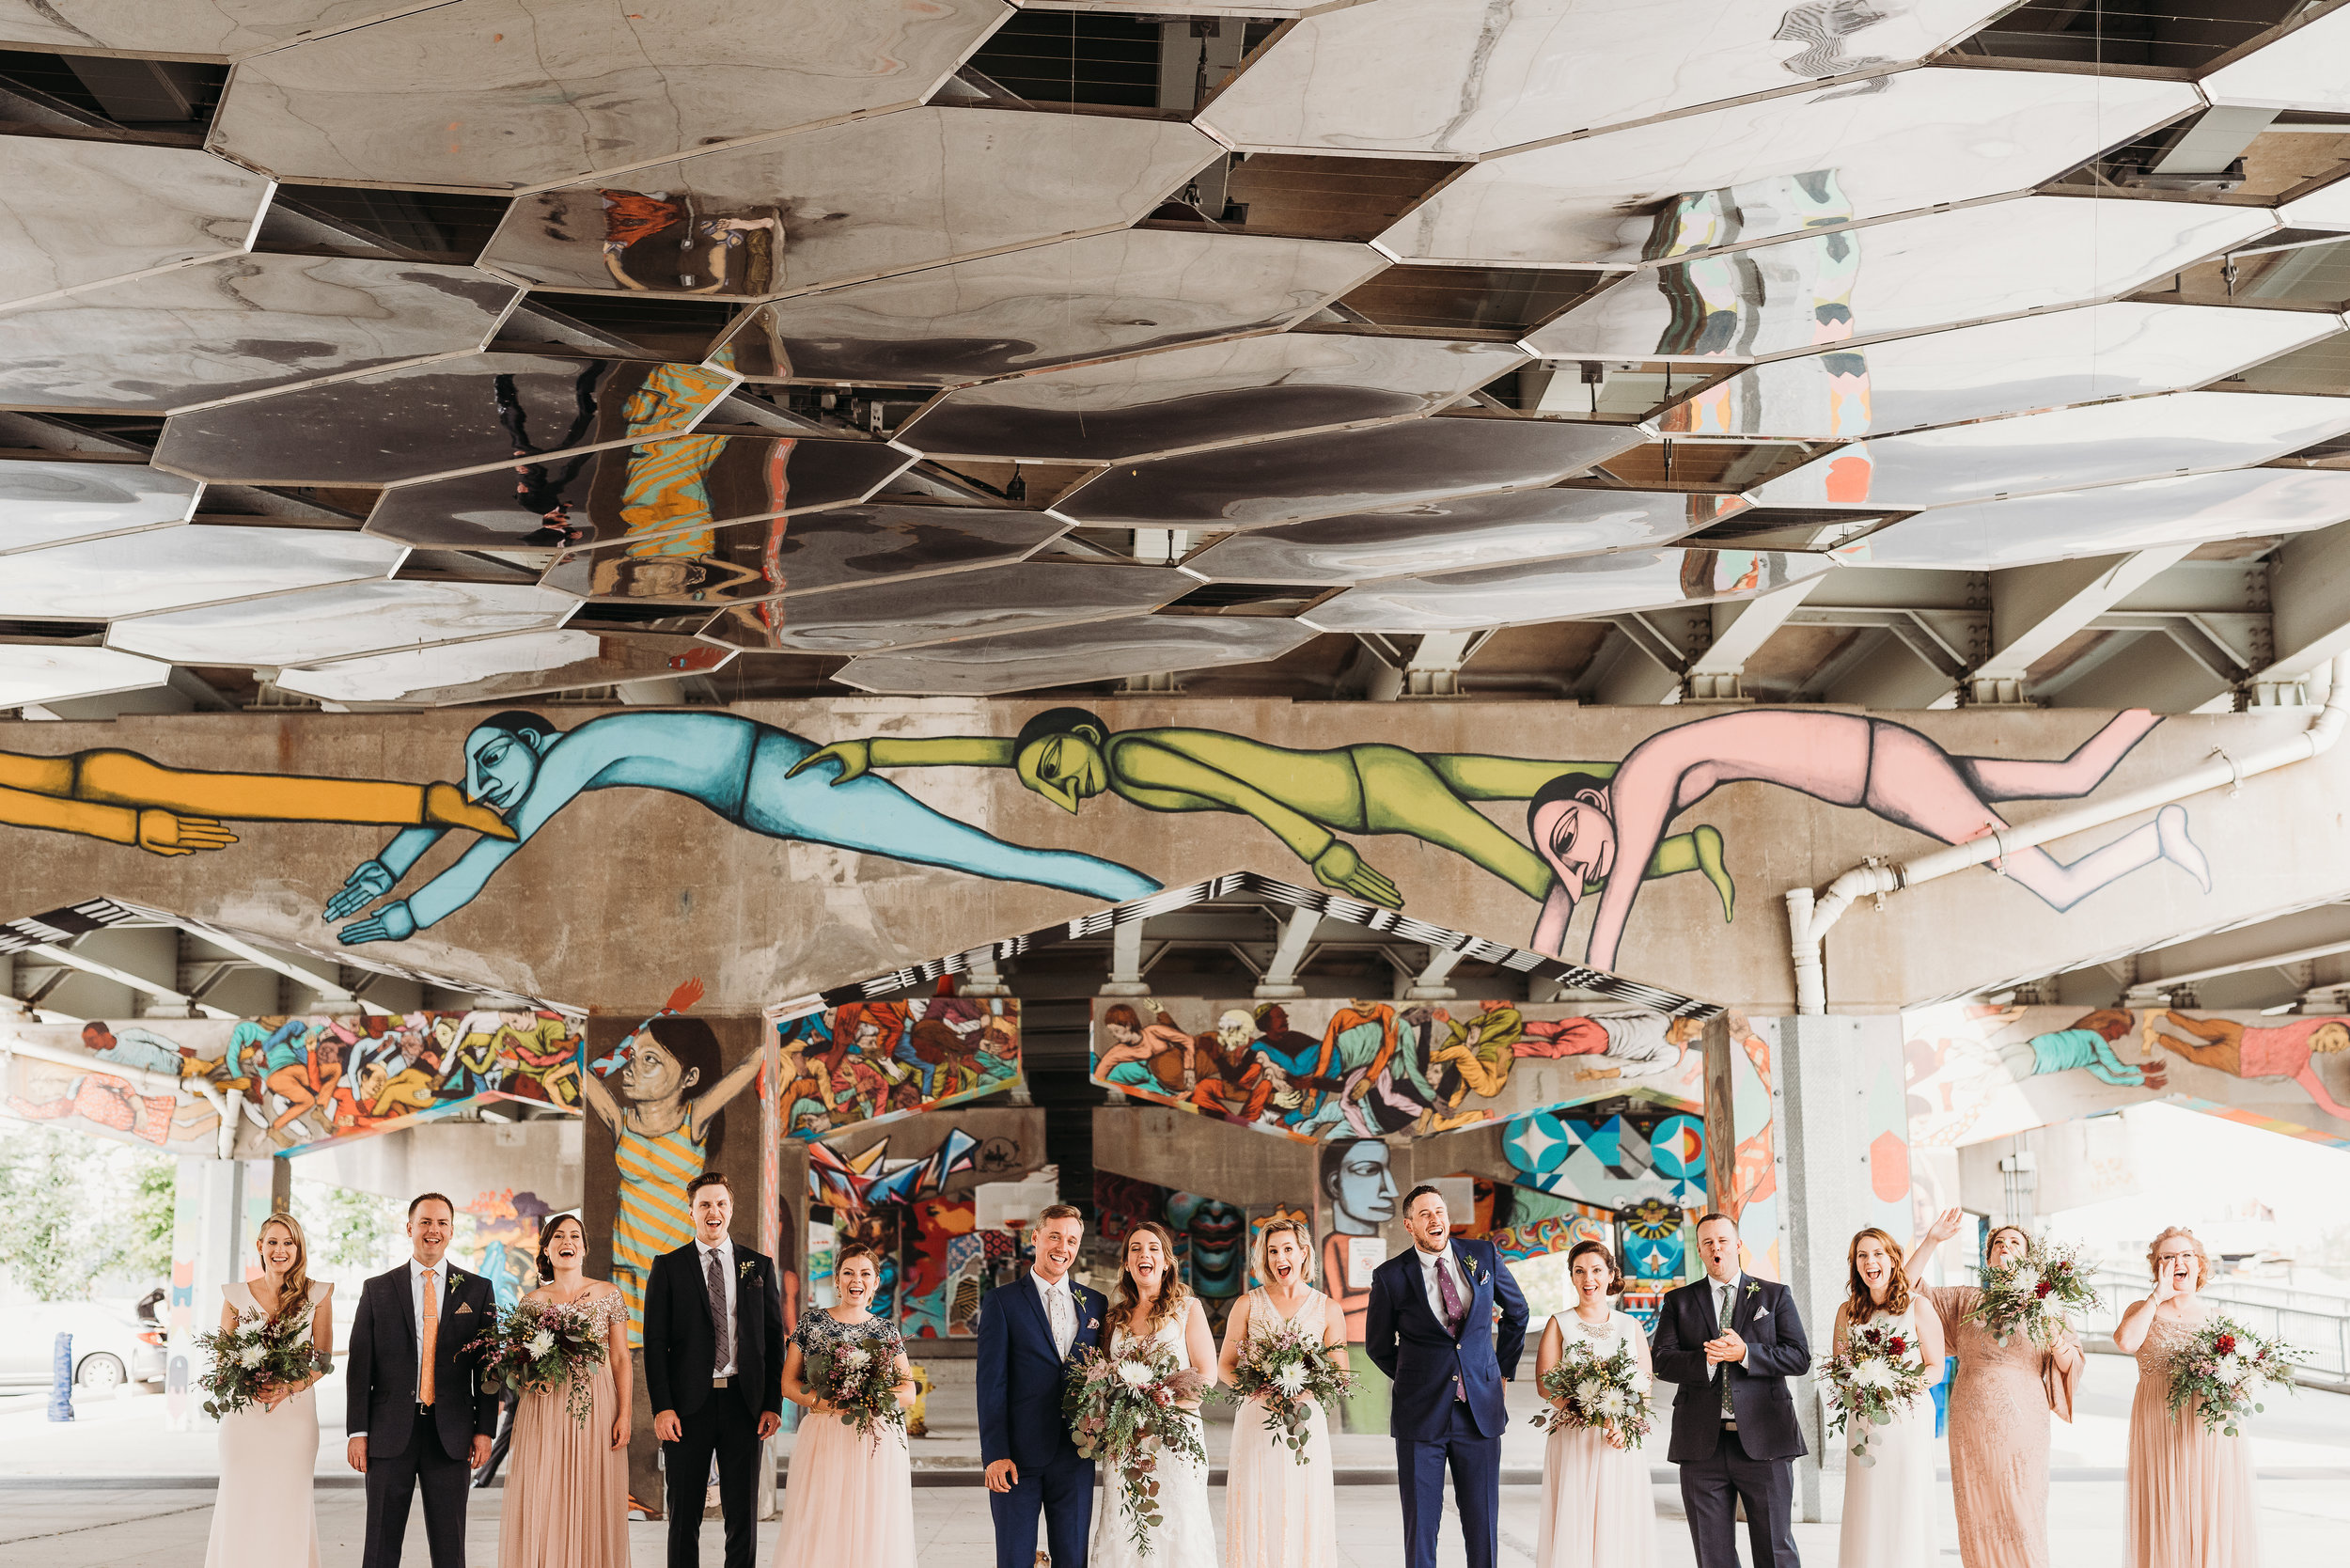 wedding-party-pictures-underpass-park-toronto-rustic-boho-airship37-wedding-by-willow-birch-photo-toronto-documentary-wedding-photographers.jpg